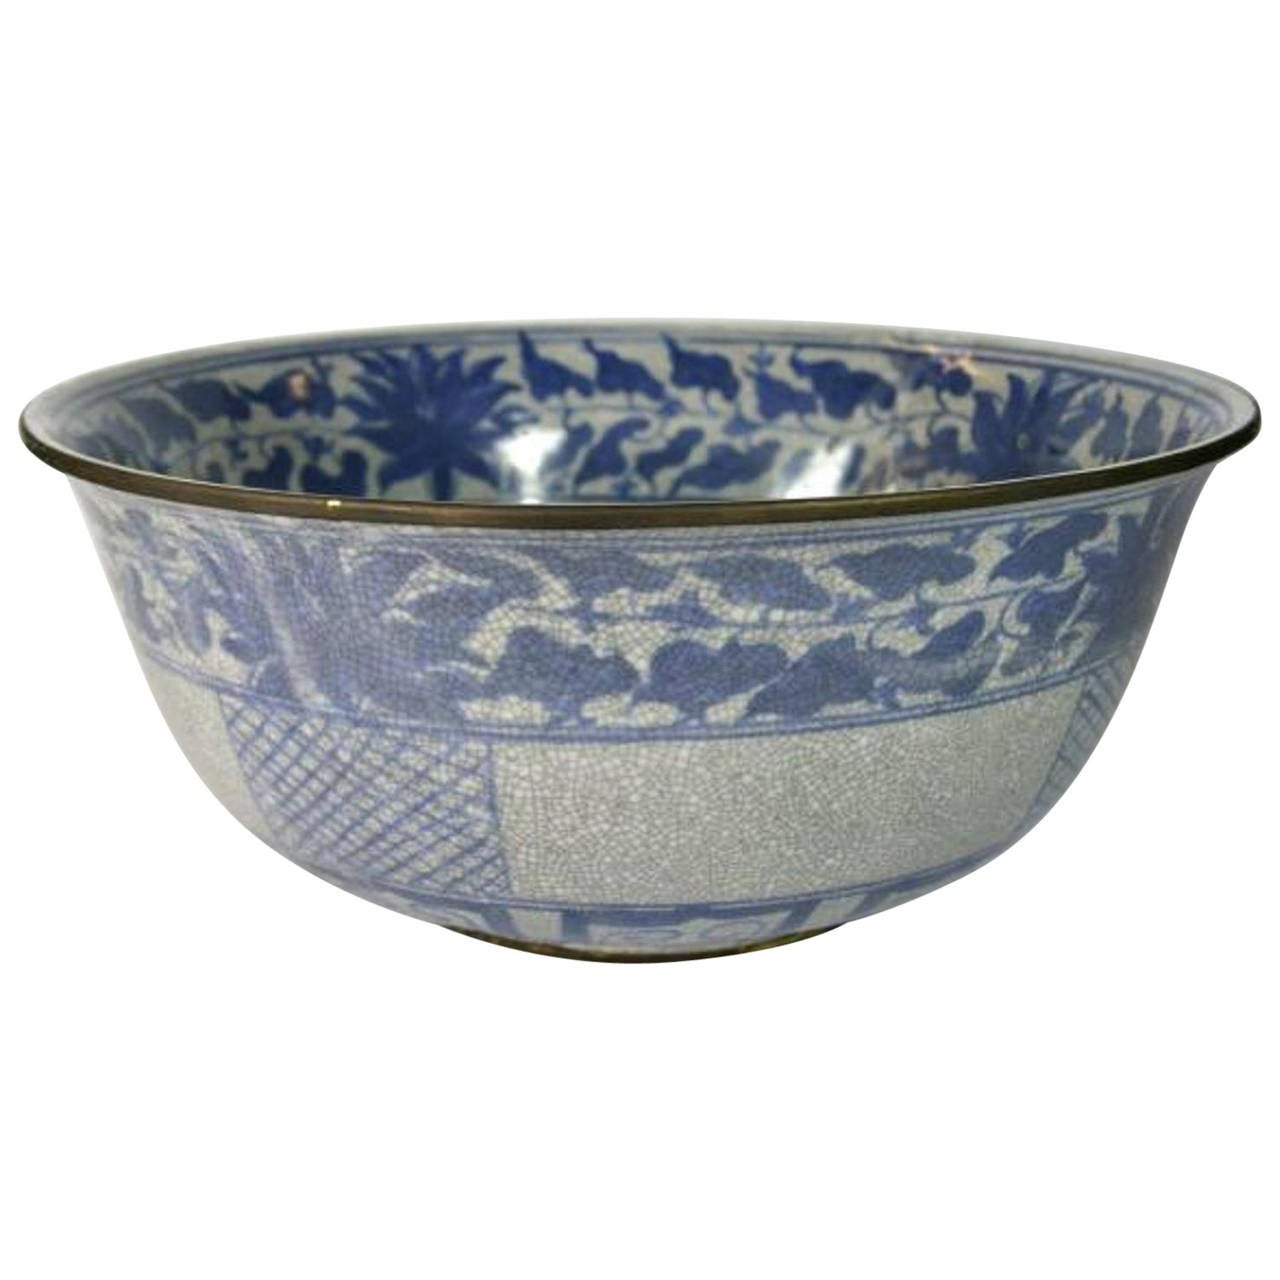 Blue and White Crackle Patina Porcelain Wash Basin from, China, 20th Century